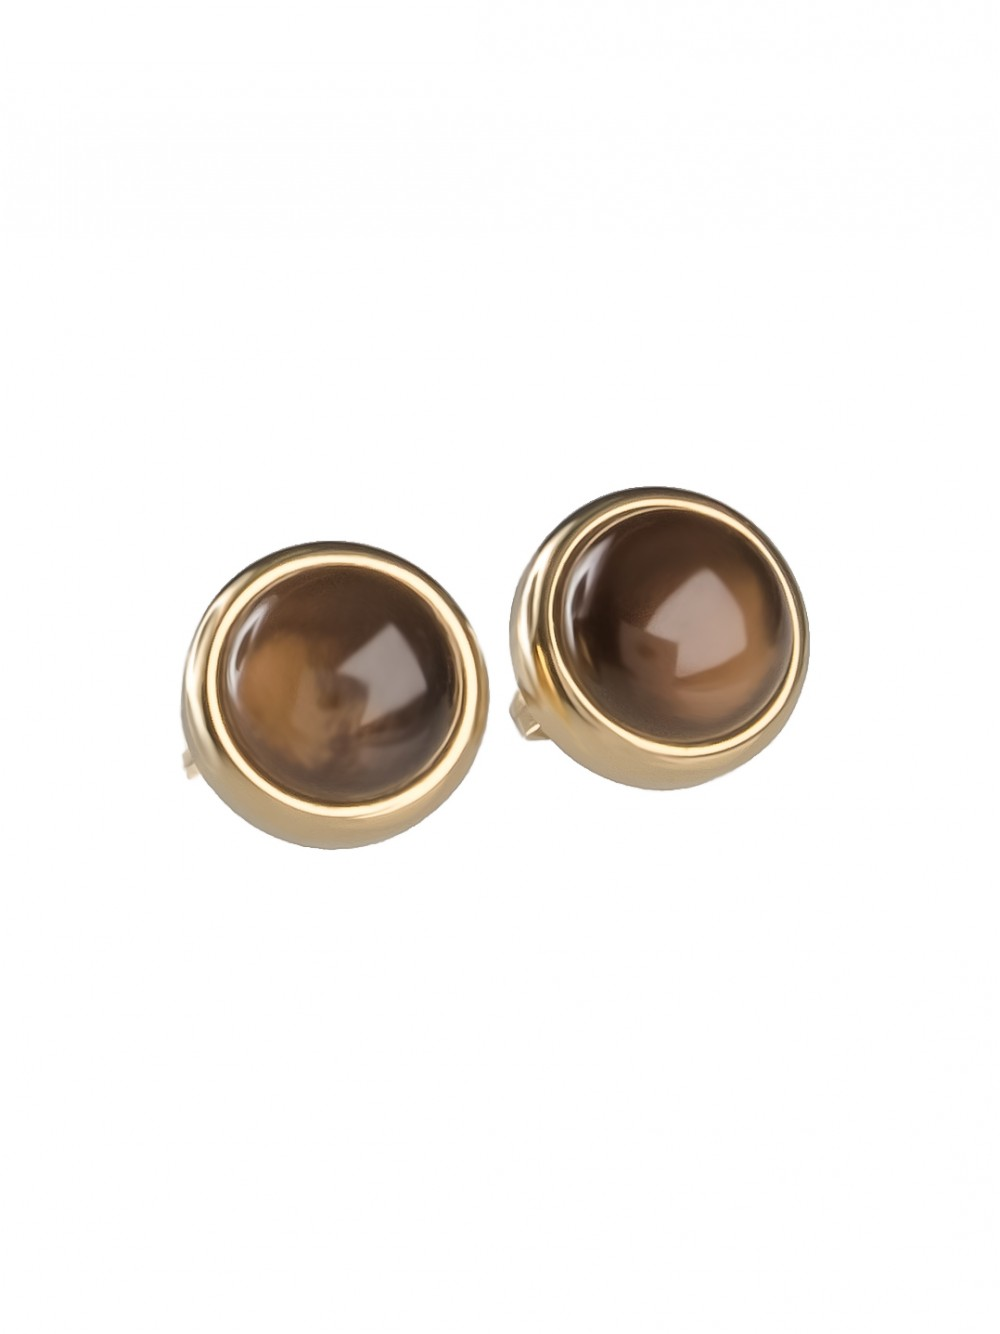 EAR STUDS SMOKY MOON